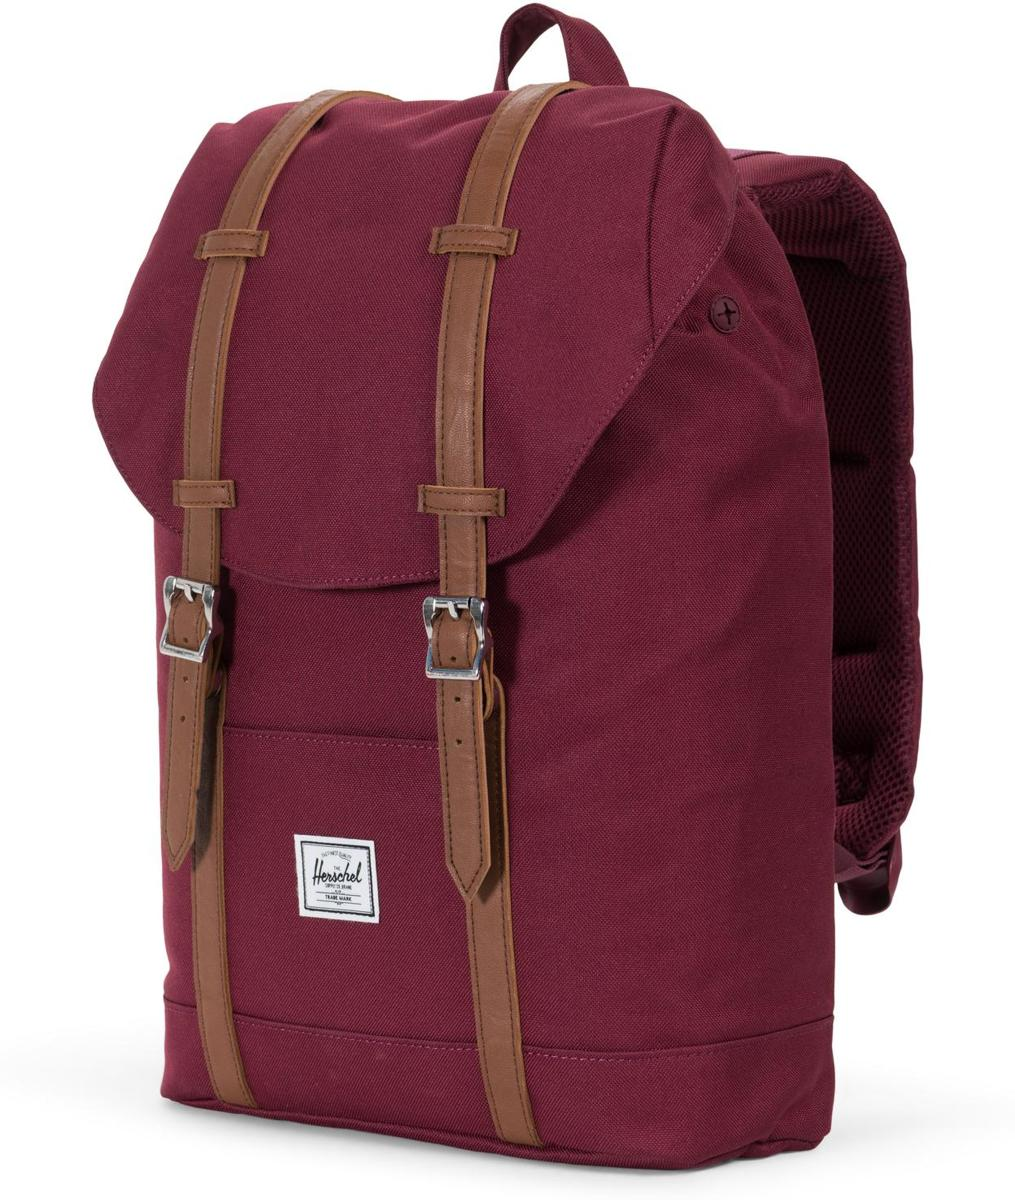 18b47fb3e24 bol.com | Herschel Supply Co. Retreat Mid-Volume Rugzak - Windsor Wine / Tan  Synthetic Leather